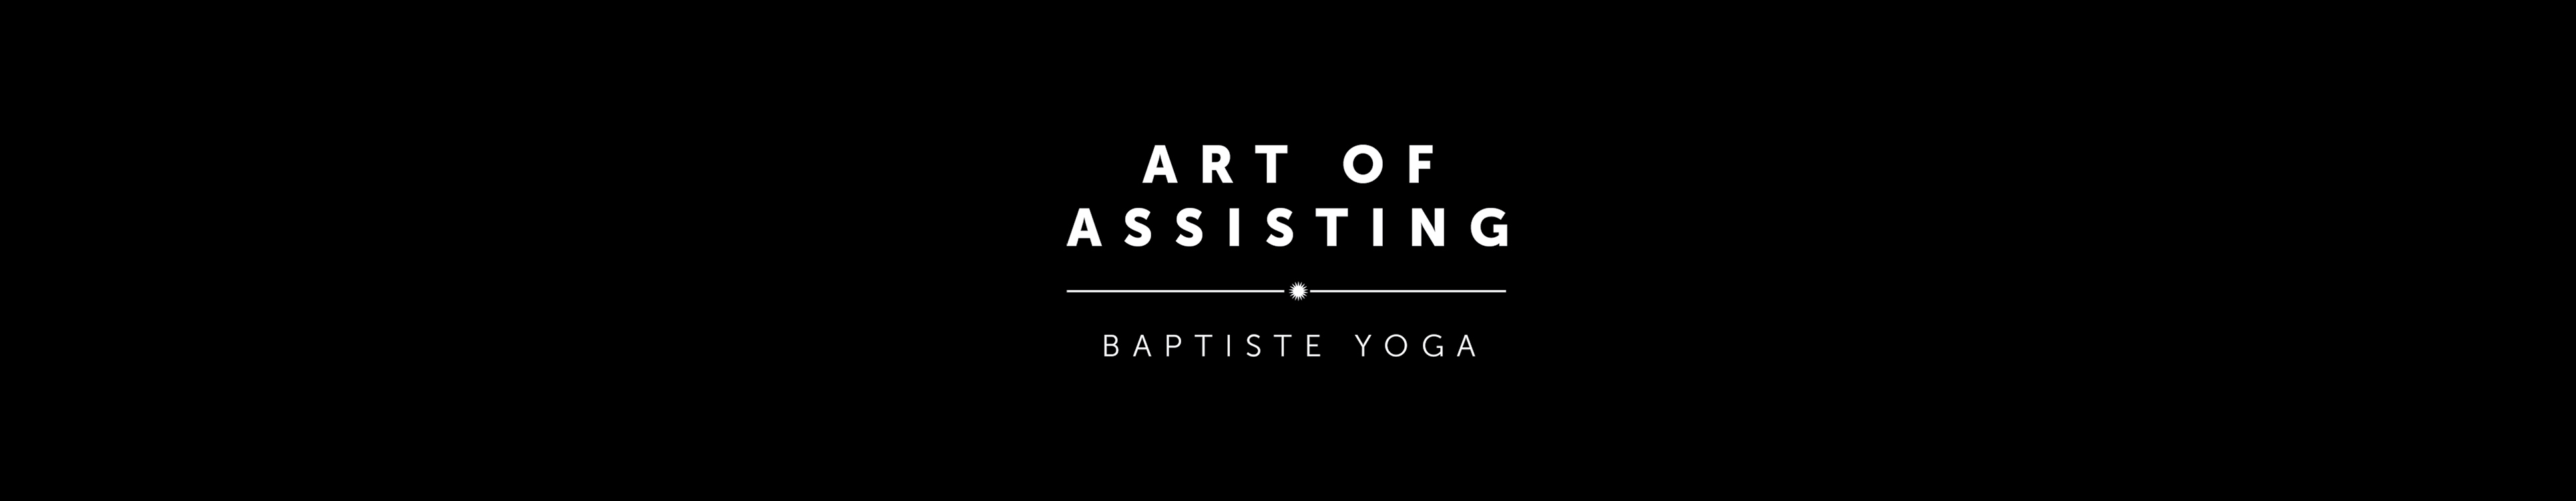 Epic Yoga | Art of Assisting